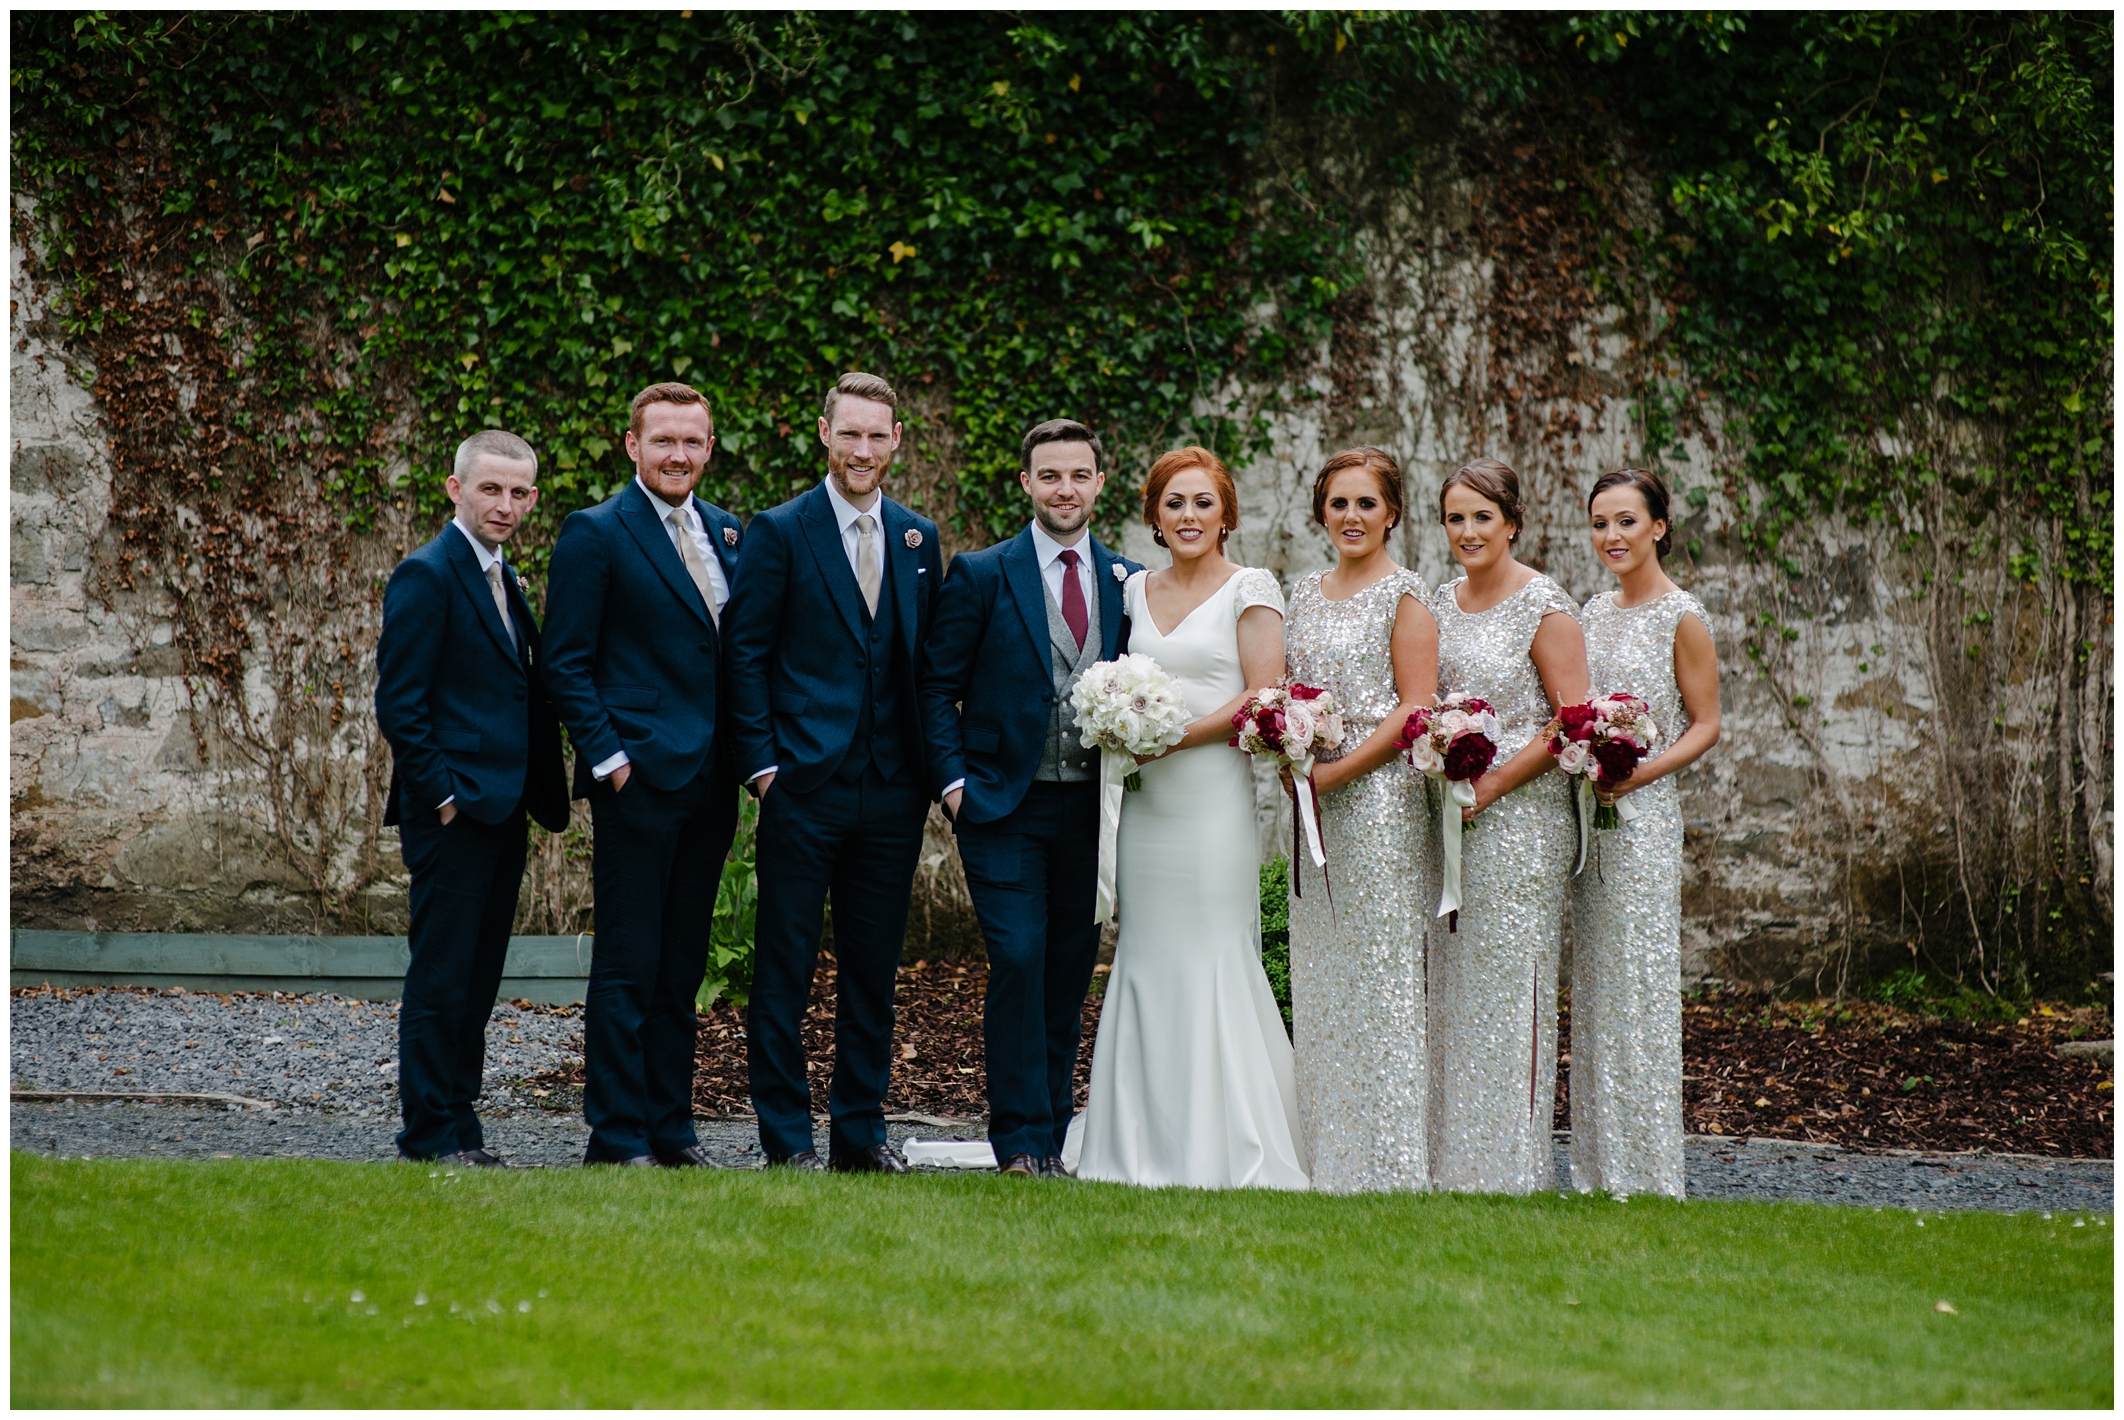 sinead_emmet_farnham_estate_wedding_jude_browne_photography_0097.jpg